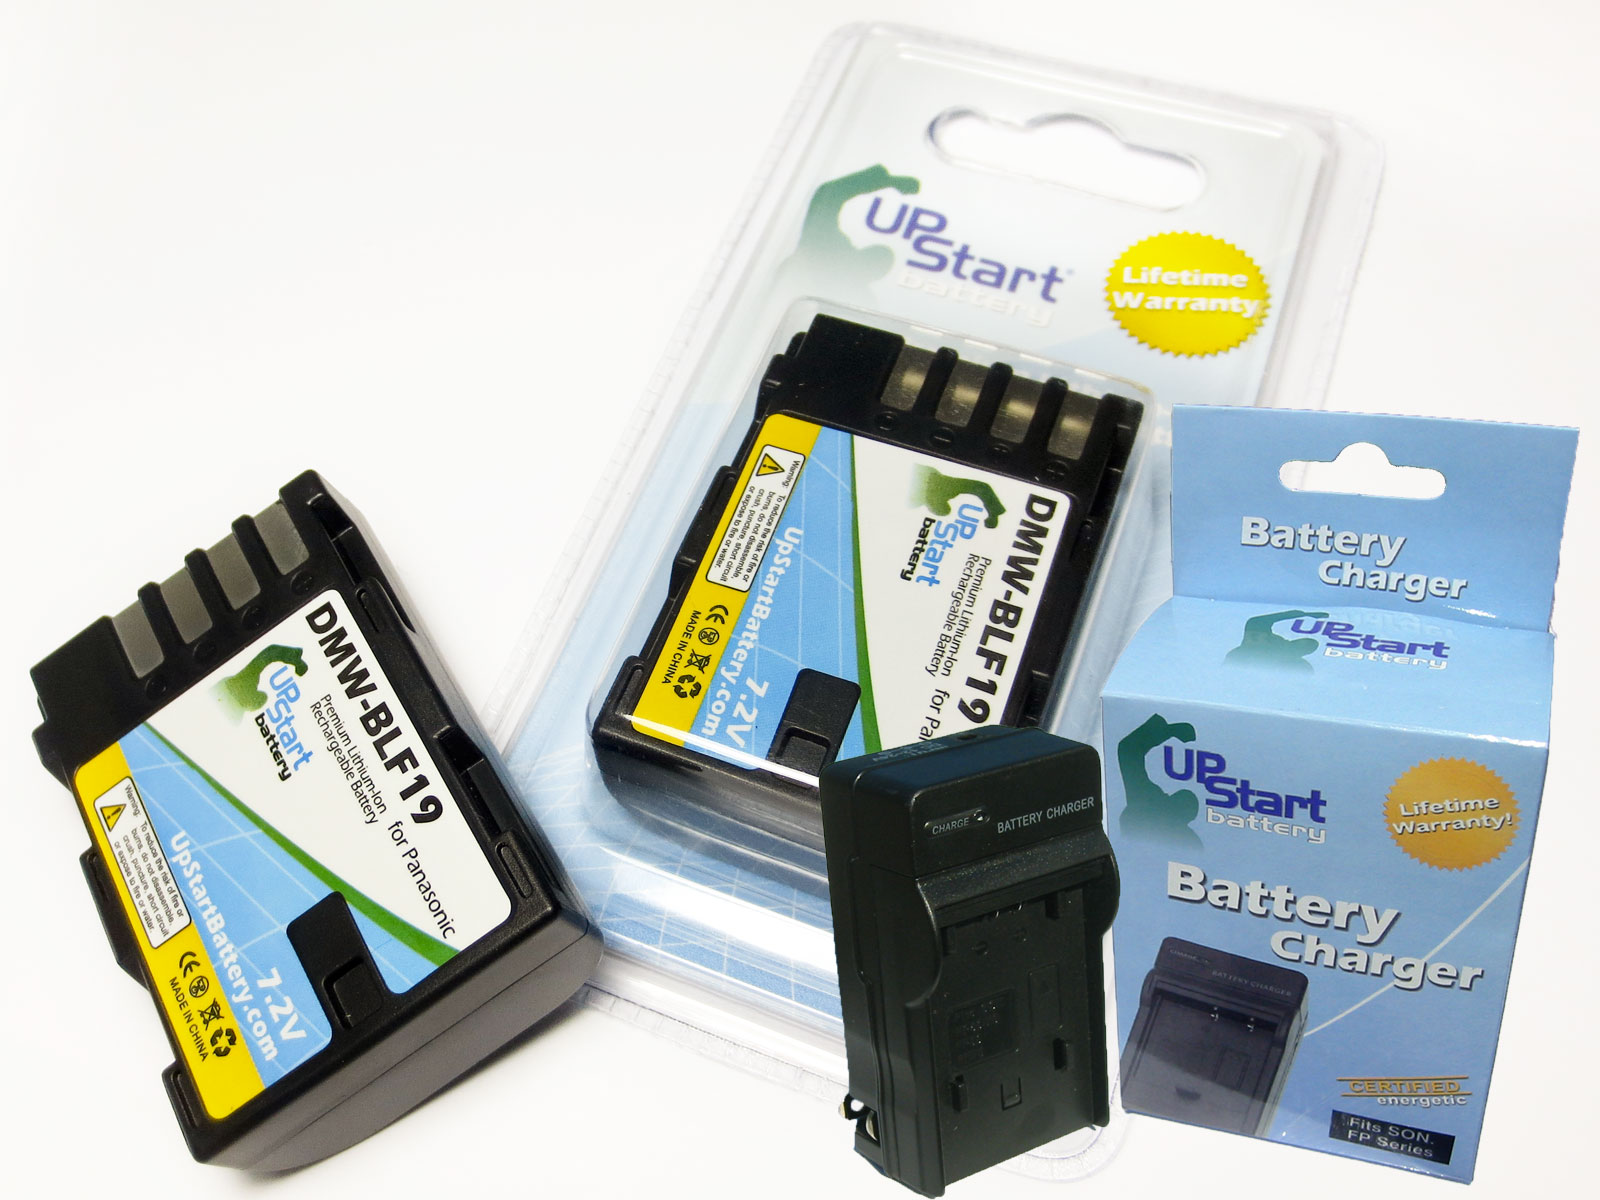 UpStart Battery 2x Pack - Panasonic Lumix DMC-GH3HGK Digital Camera Battery + Charger - Replacement Kit for Panasonic DMW-BLF19 at Sears.com